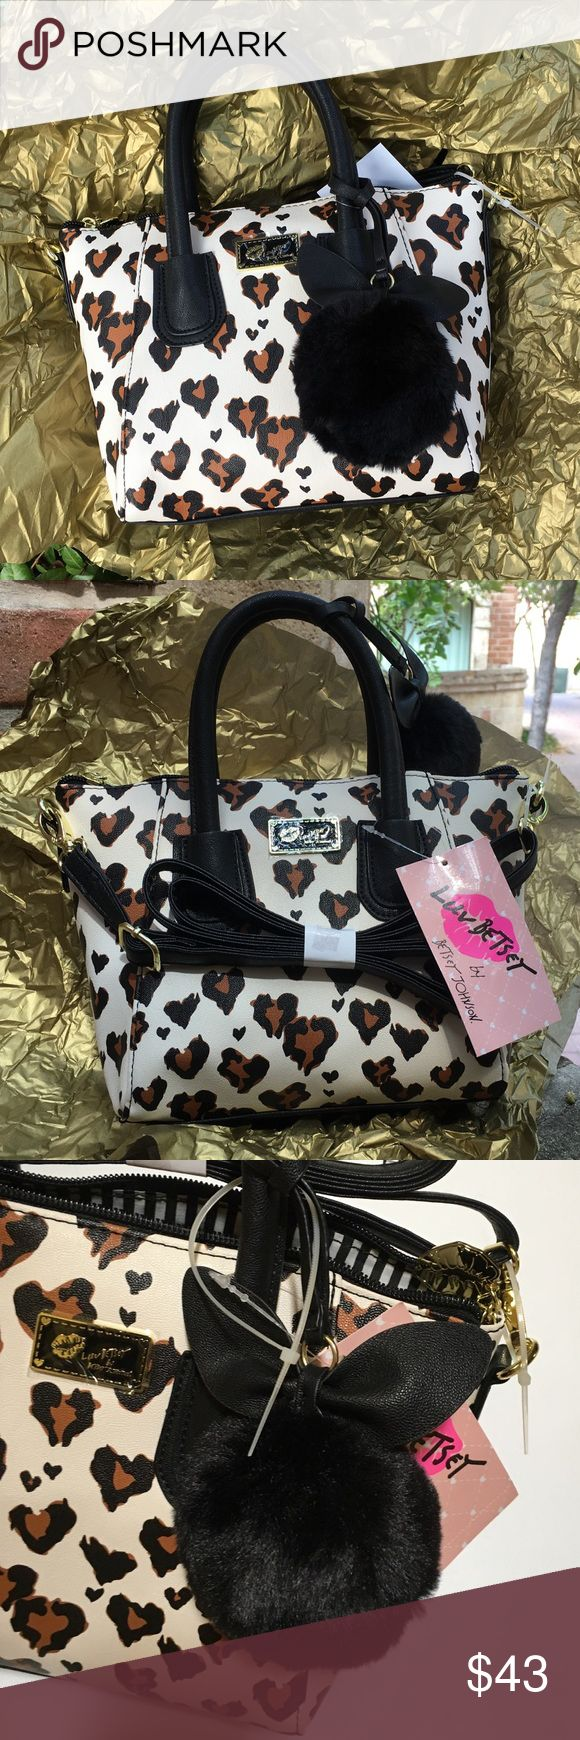 "Betsey Johnson Leopard Stripe Satchel Dome Purse Betsey Johnson Leopard LBGIYAA satchel dome purse. NWT. Attached with a cute fluffy cat face shape keychain. It can be a cross shoulder bag or a small handbag. Zipper closure with an inner zipper bag. Measurement: 7"" (H); 10"" (top length); 7 1/2"" (bottom length); 4 1/2"" (bottom width). Betsey Johnson Bags"